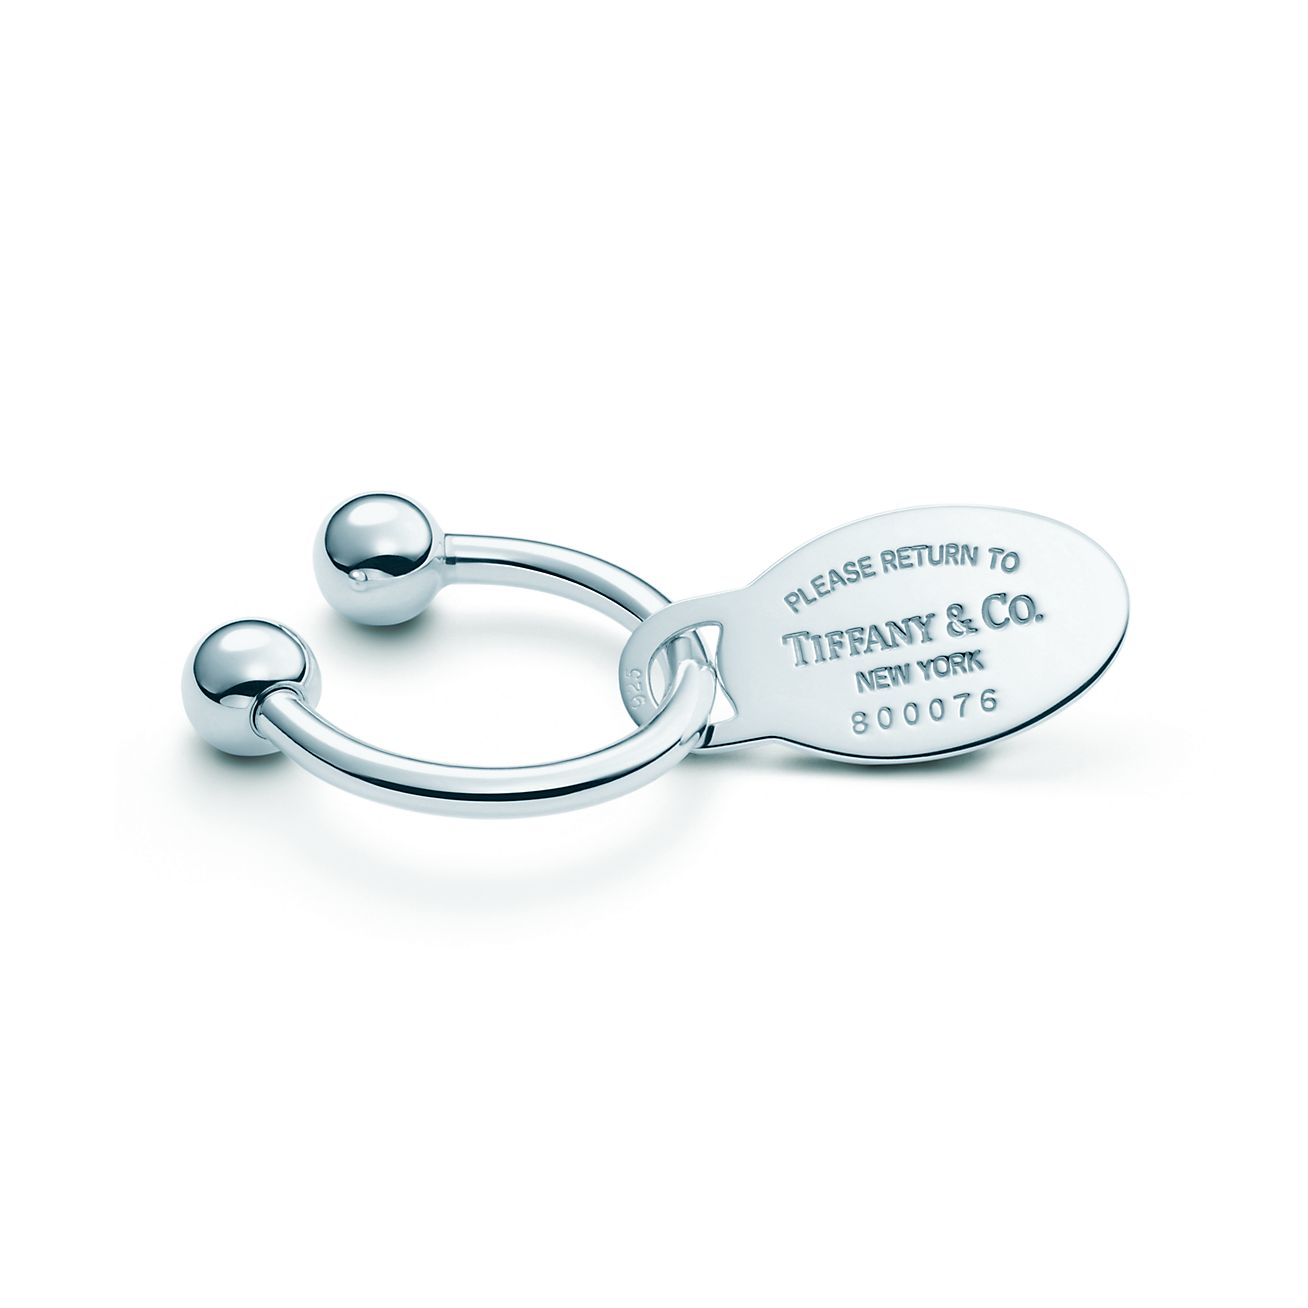 Accessories Key Rings Return To Tiffany Oval Tag Key Ring 15882301 Tiffany Sterling Silver Key Chain